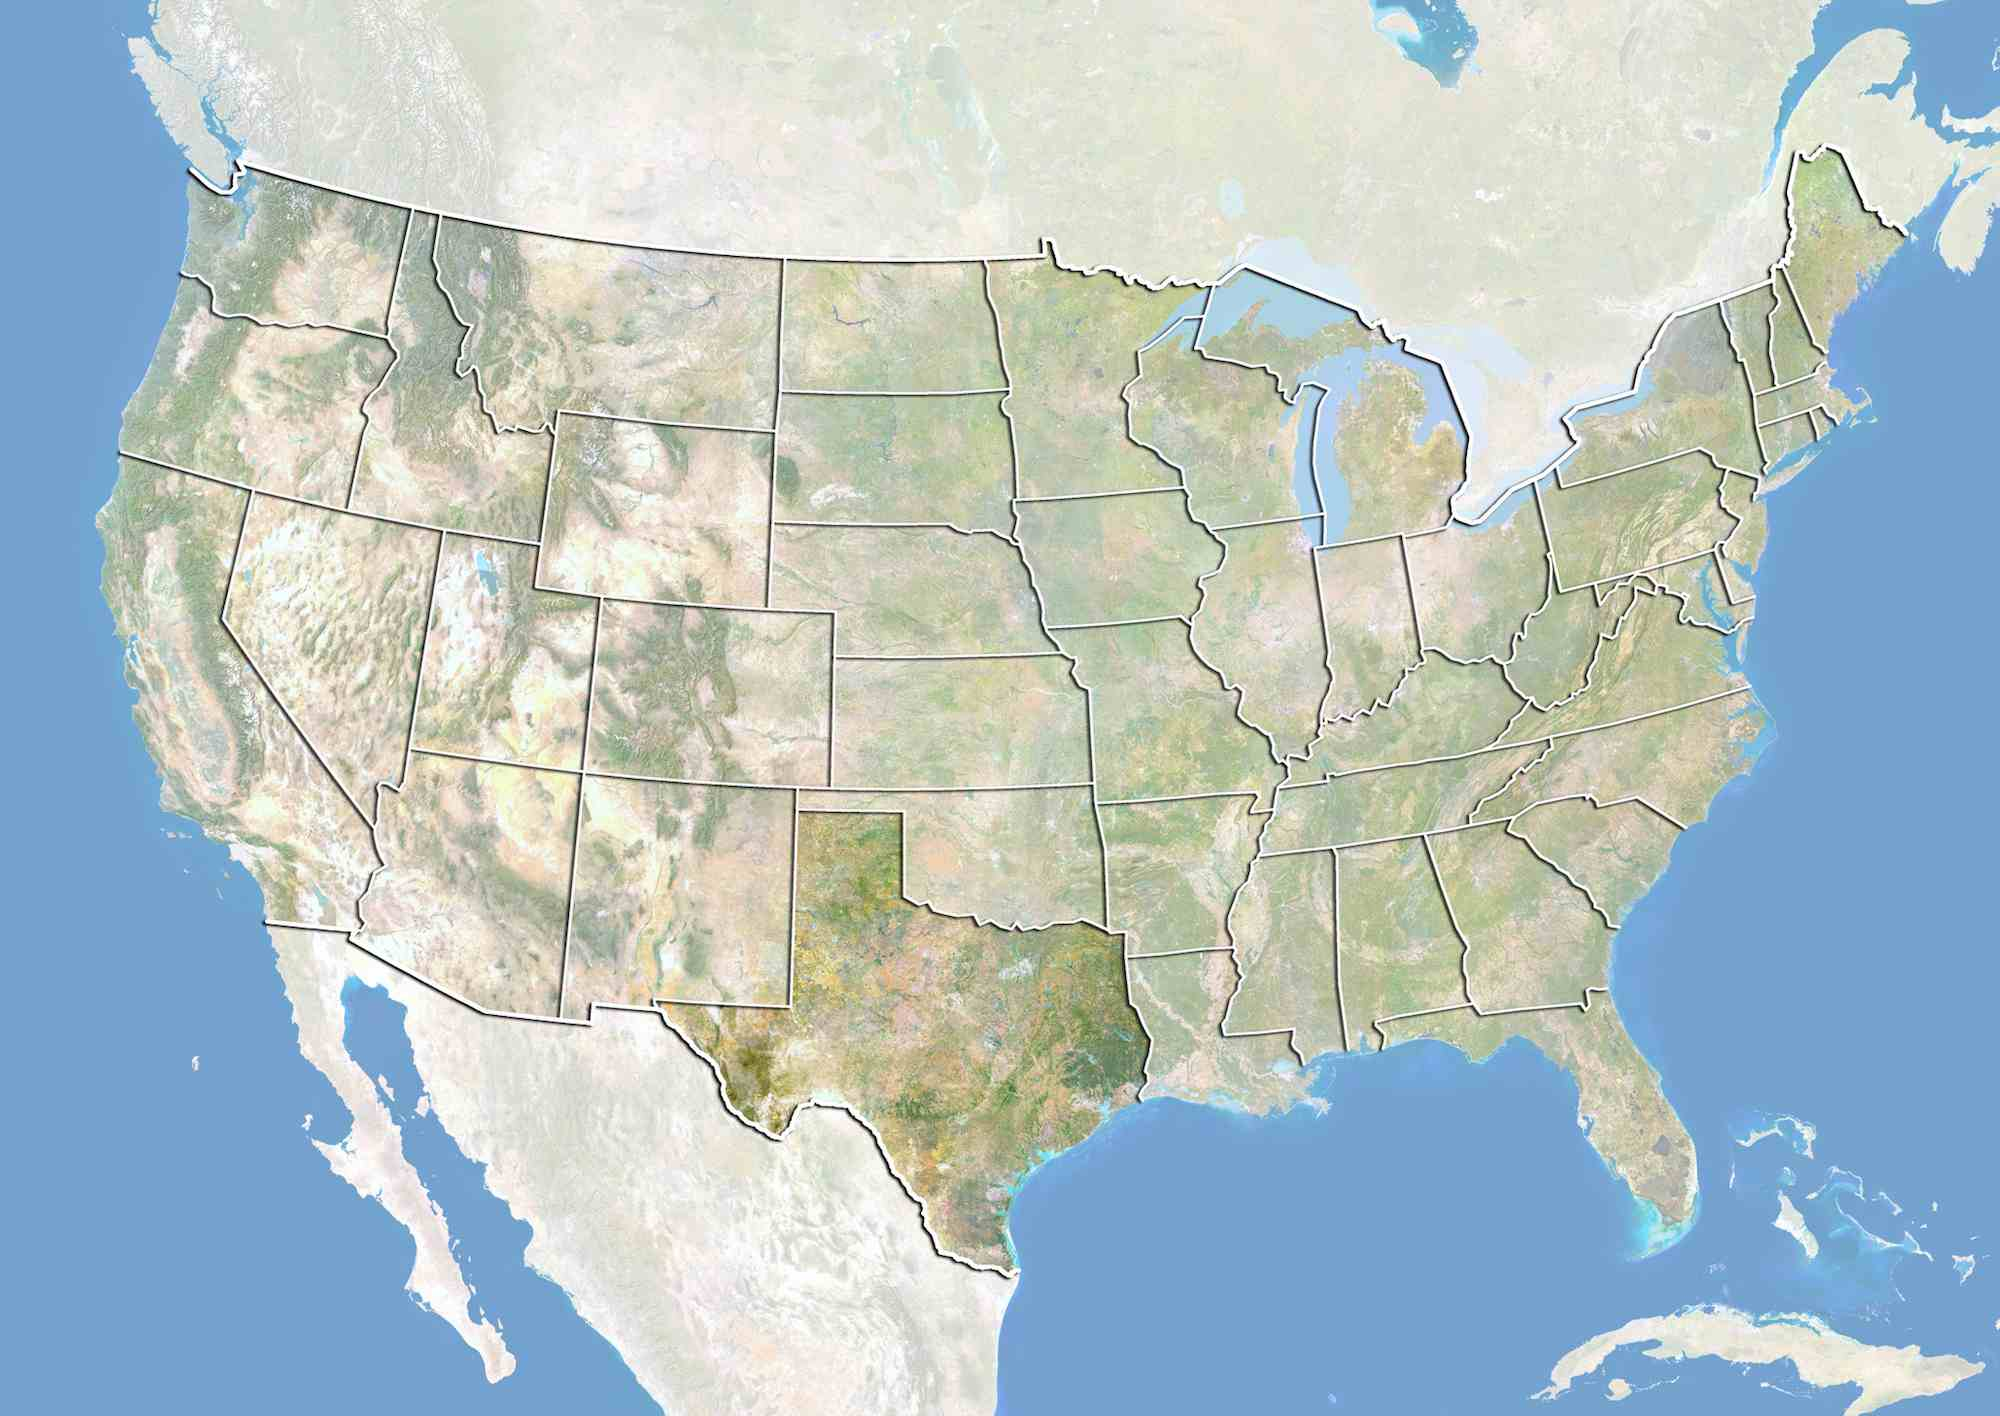 United States and the State of Texas, Satellite Image With Bump Effect